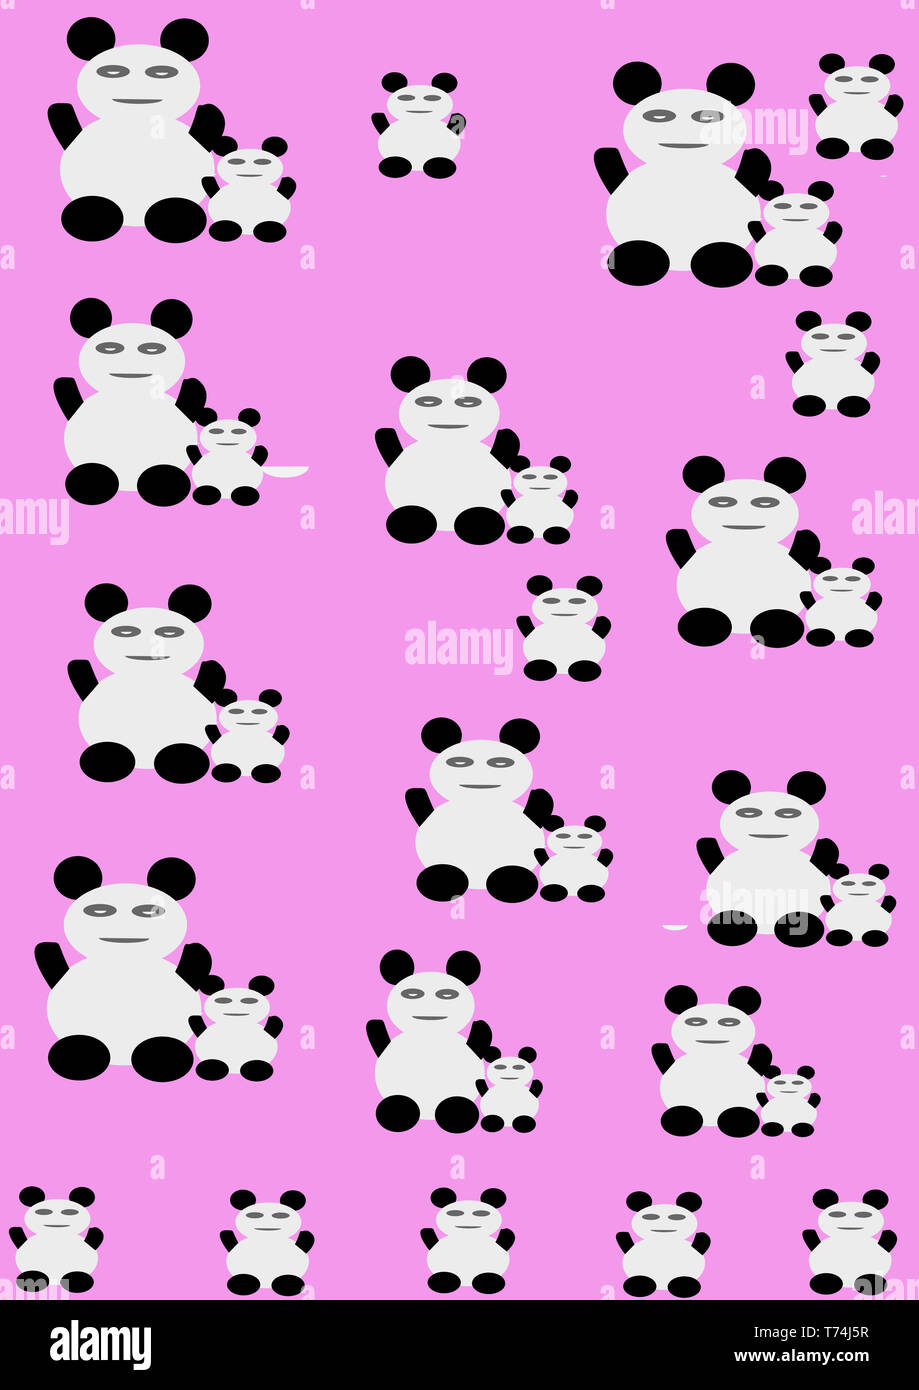 Amazing kids panda with baby panda pattern wallpaper for interior design, fabric, t-shirt etc. Kids wall paper.